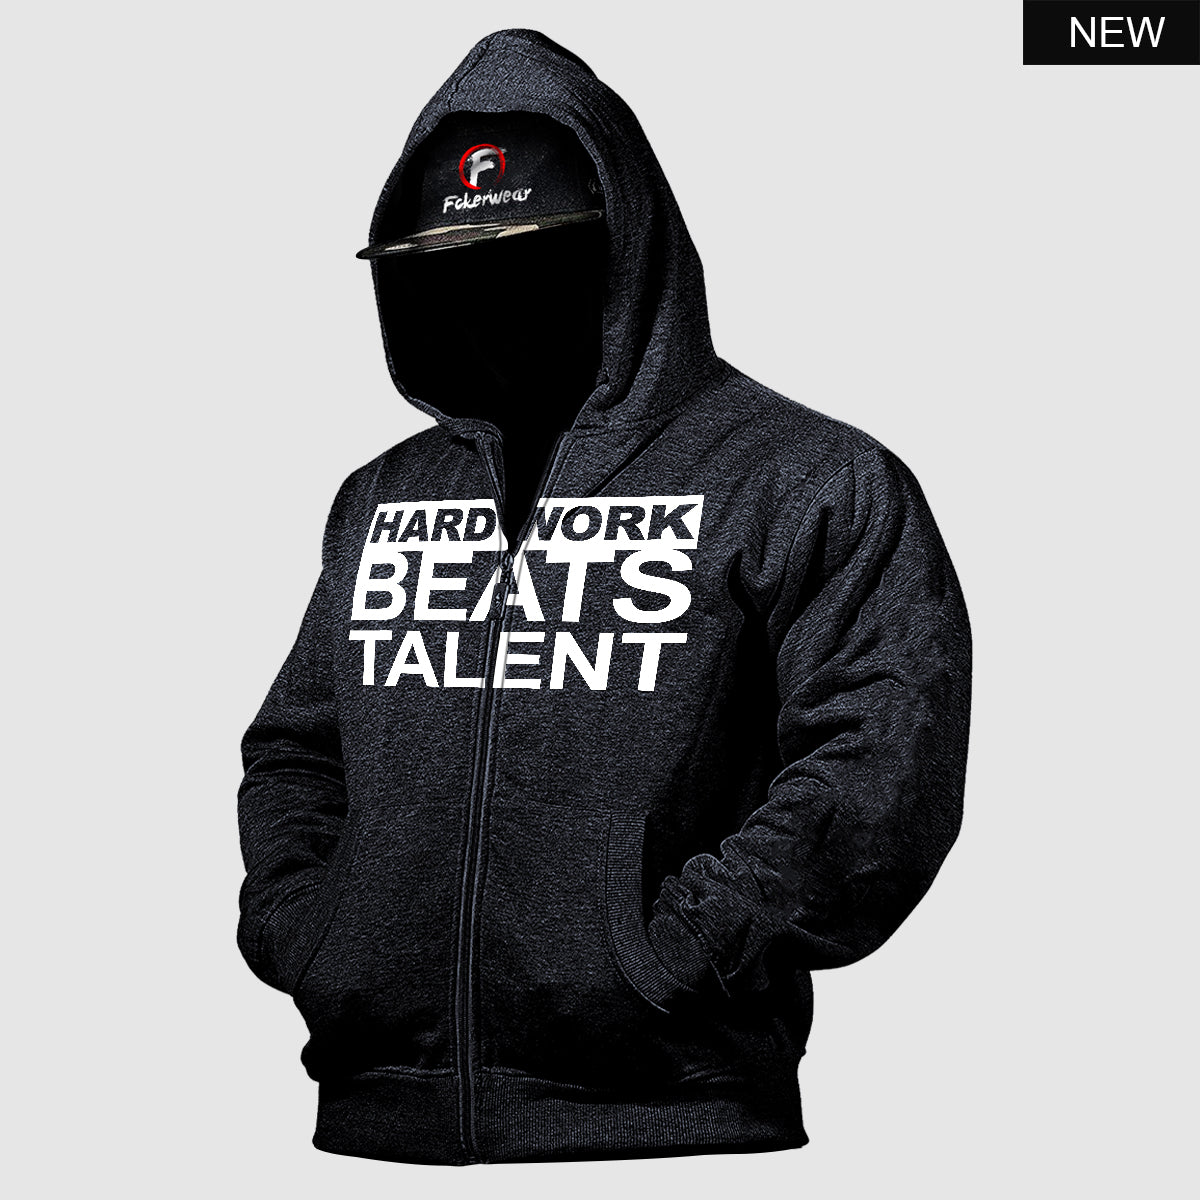 Hard Work Beats Talent™ zip hoodie